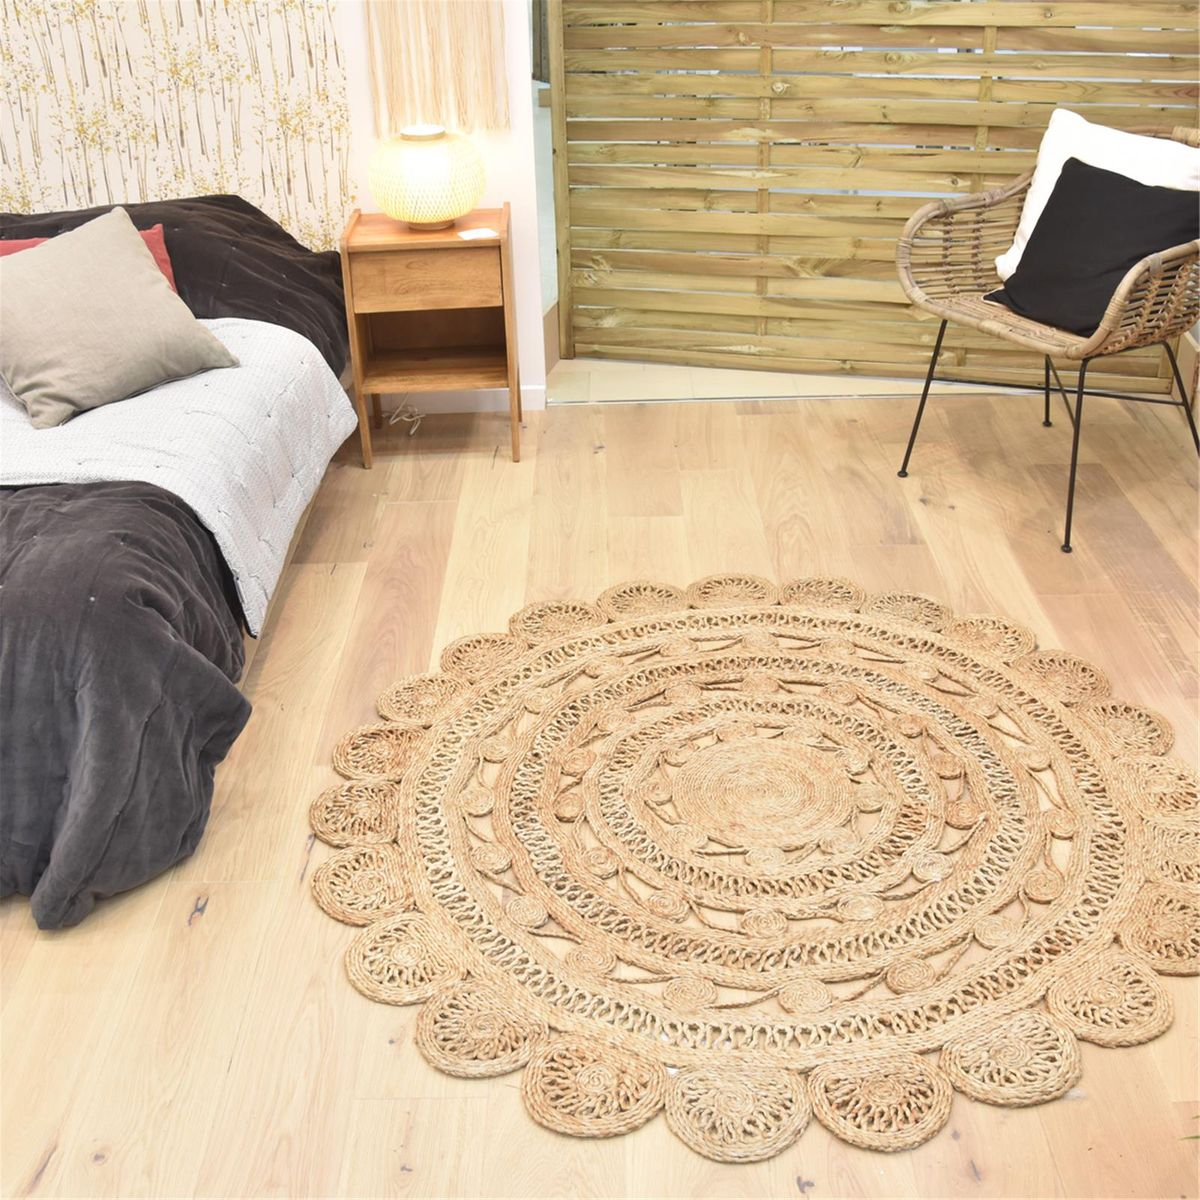 tapis rond en jute naturel tiss main fleur d150 cm. Black Bedroom Furniture Sets. Home Design Ideas